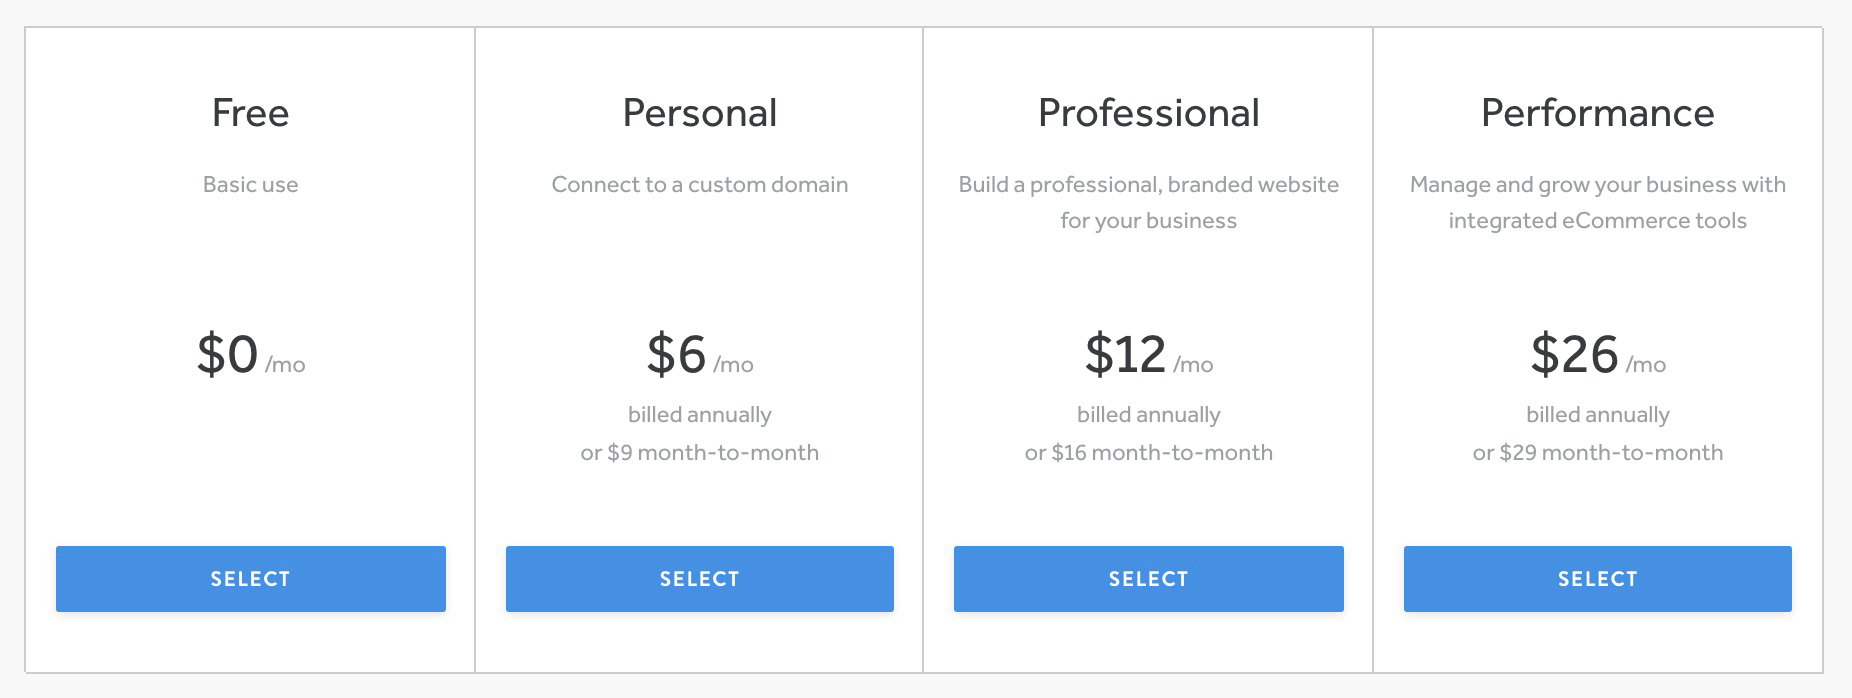 Weebly pricing list